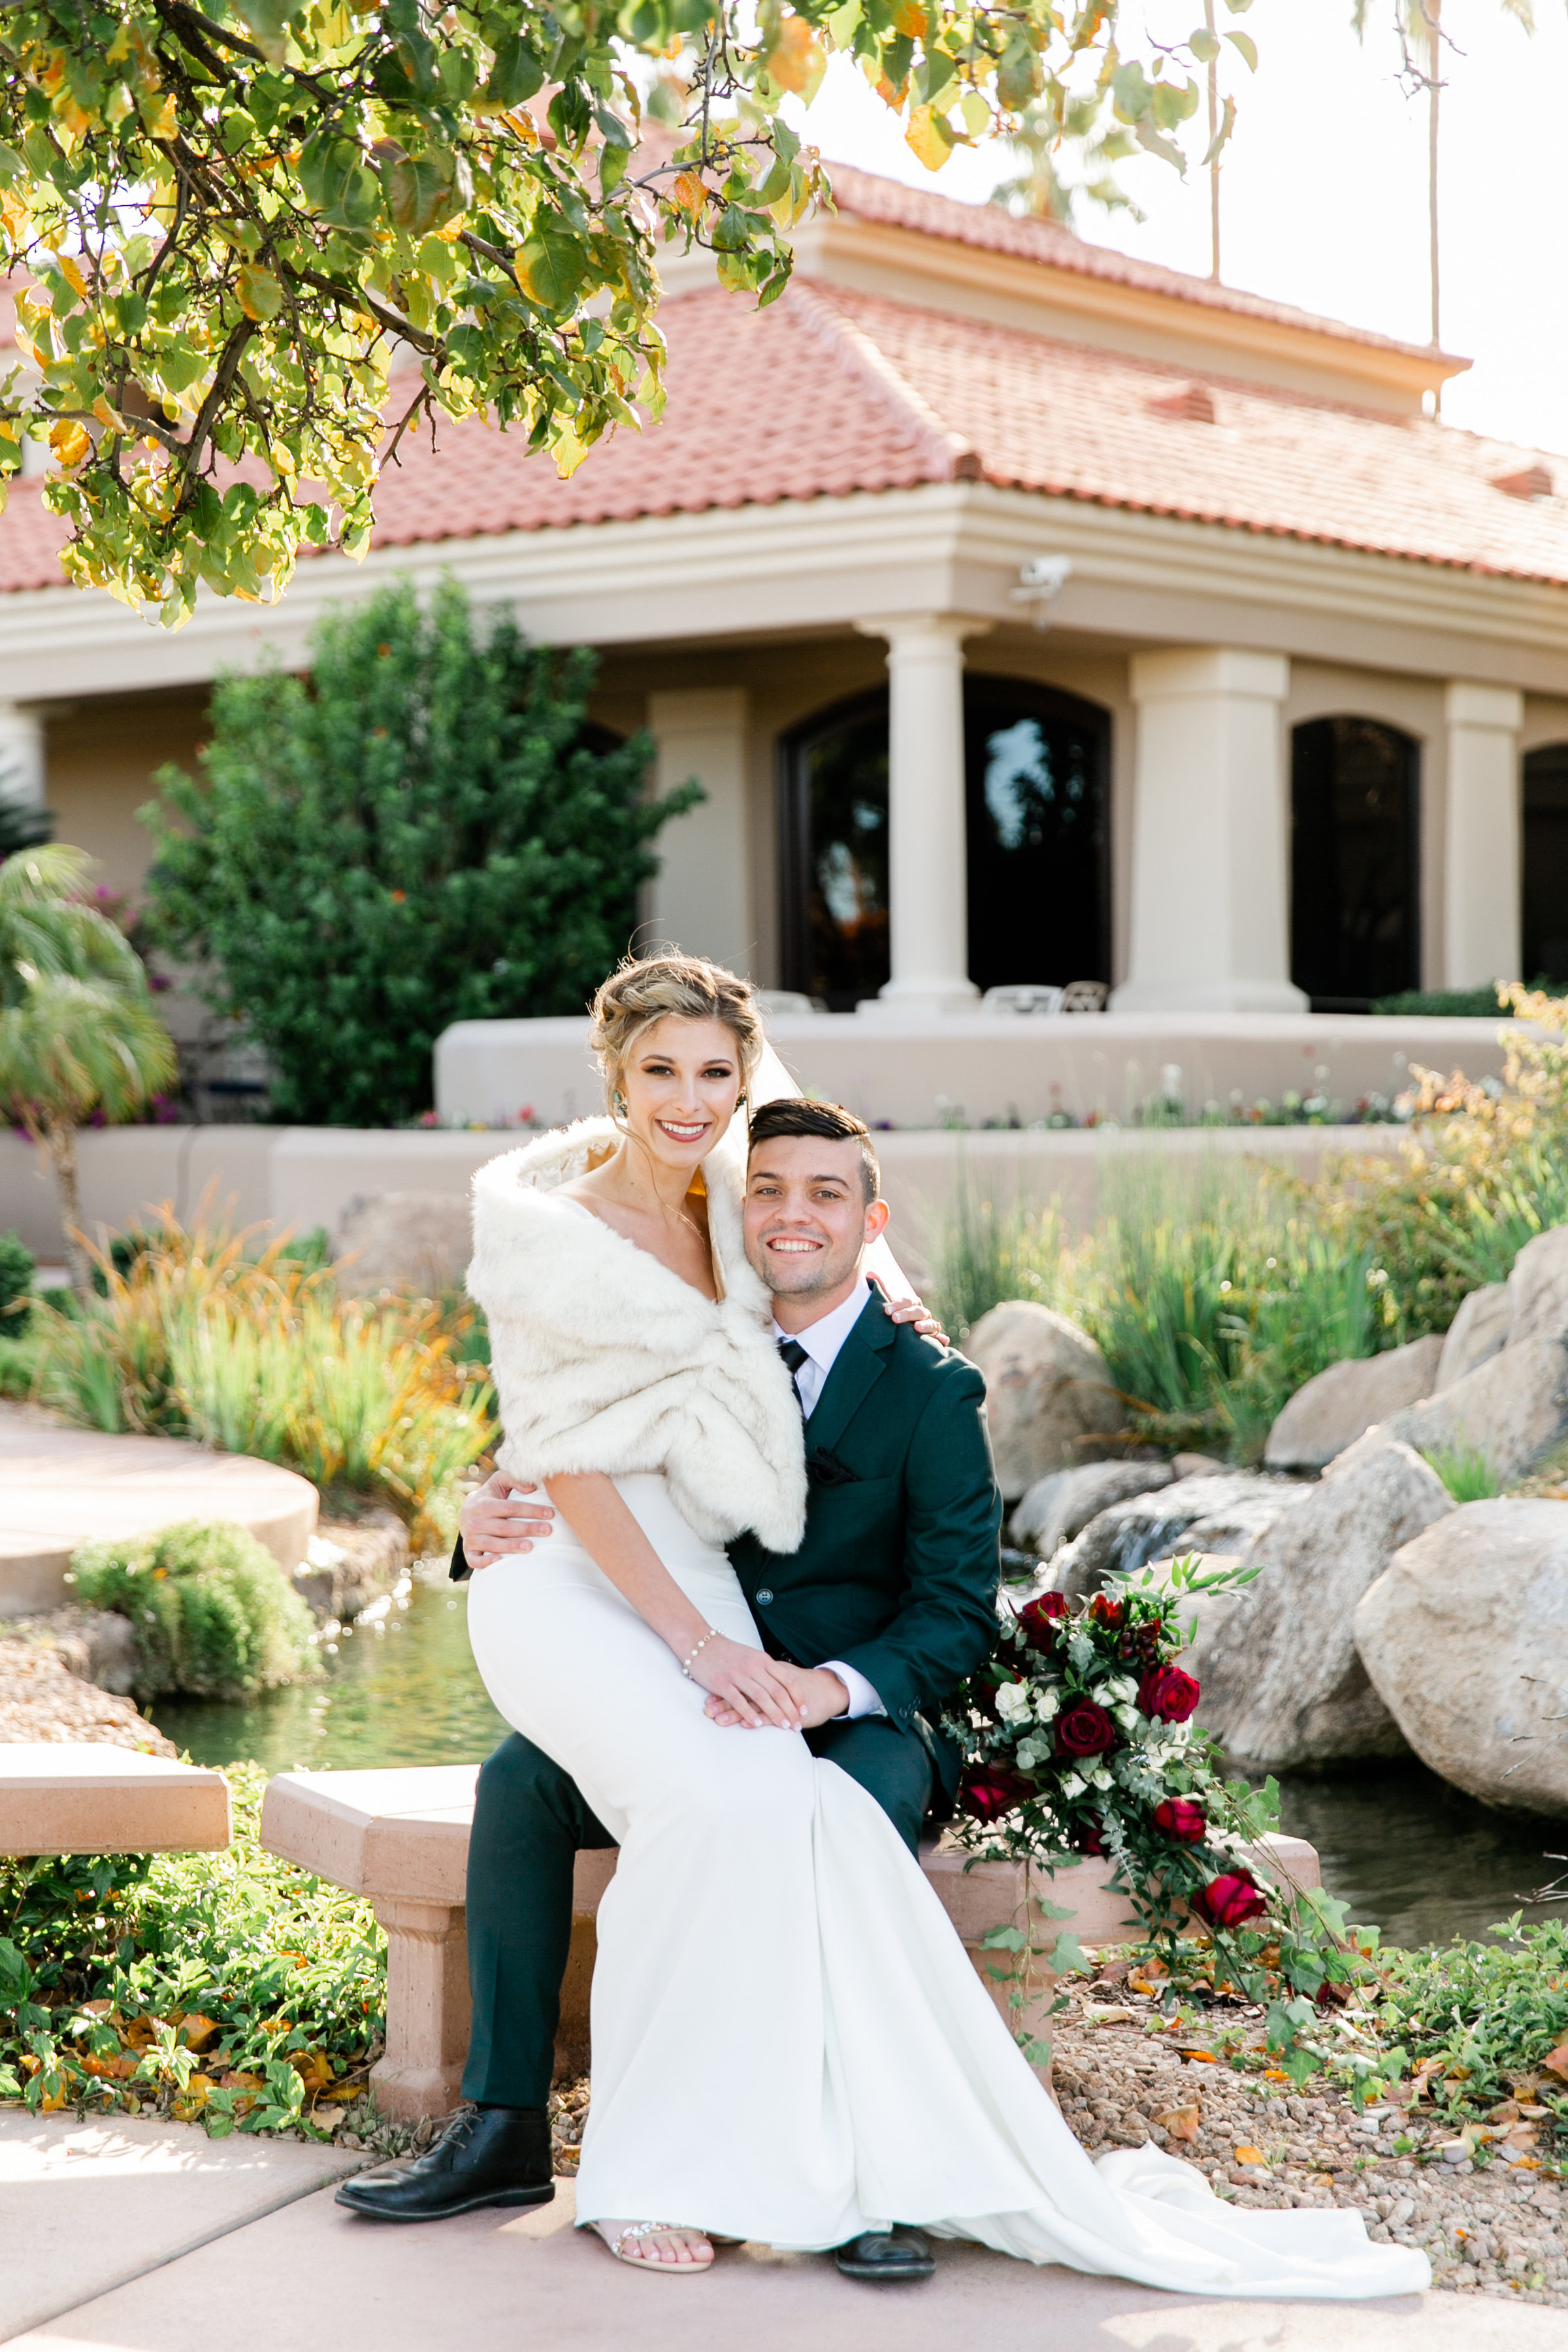 Karlie Colleen Photography - Gilbert Wedding - Val Vista Lakes - Brynne & Josh-30